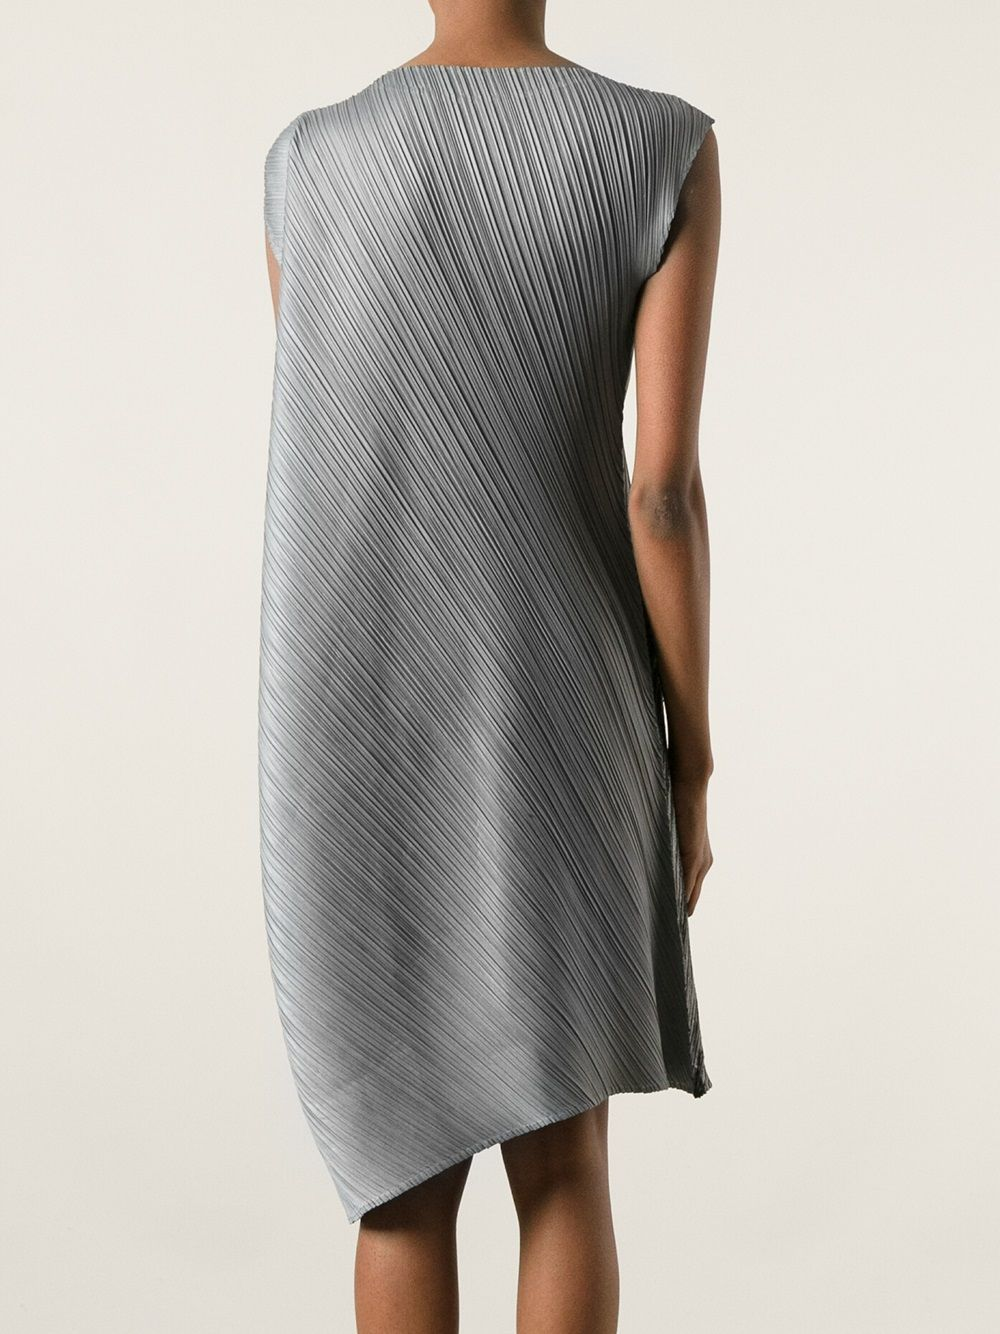 Tonal Grey Boxy Asymmetric Pleated Dress From Pleats Please By Issey Miyake Featuring A Round Neck Sleeveless Design Grant Effect And An